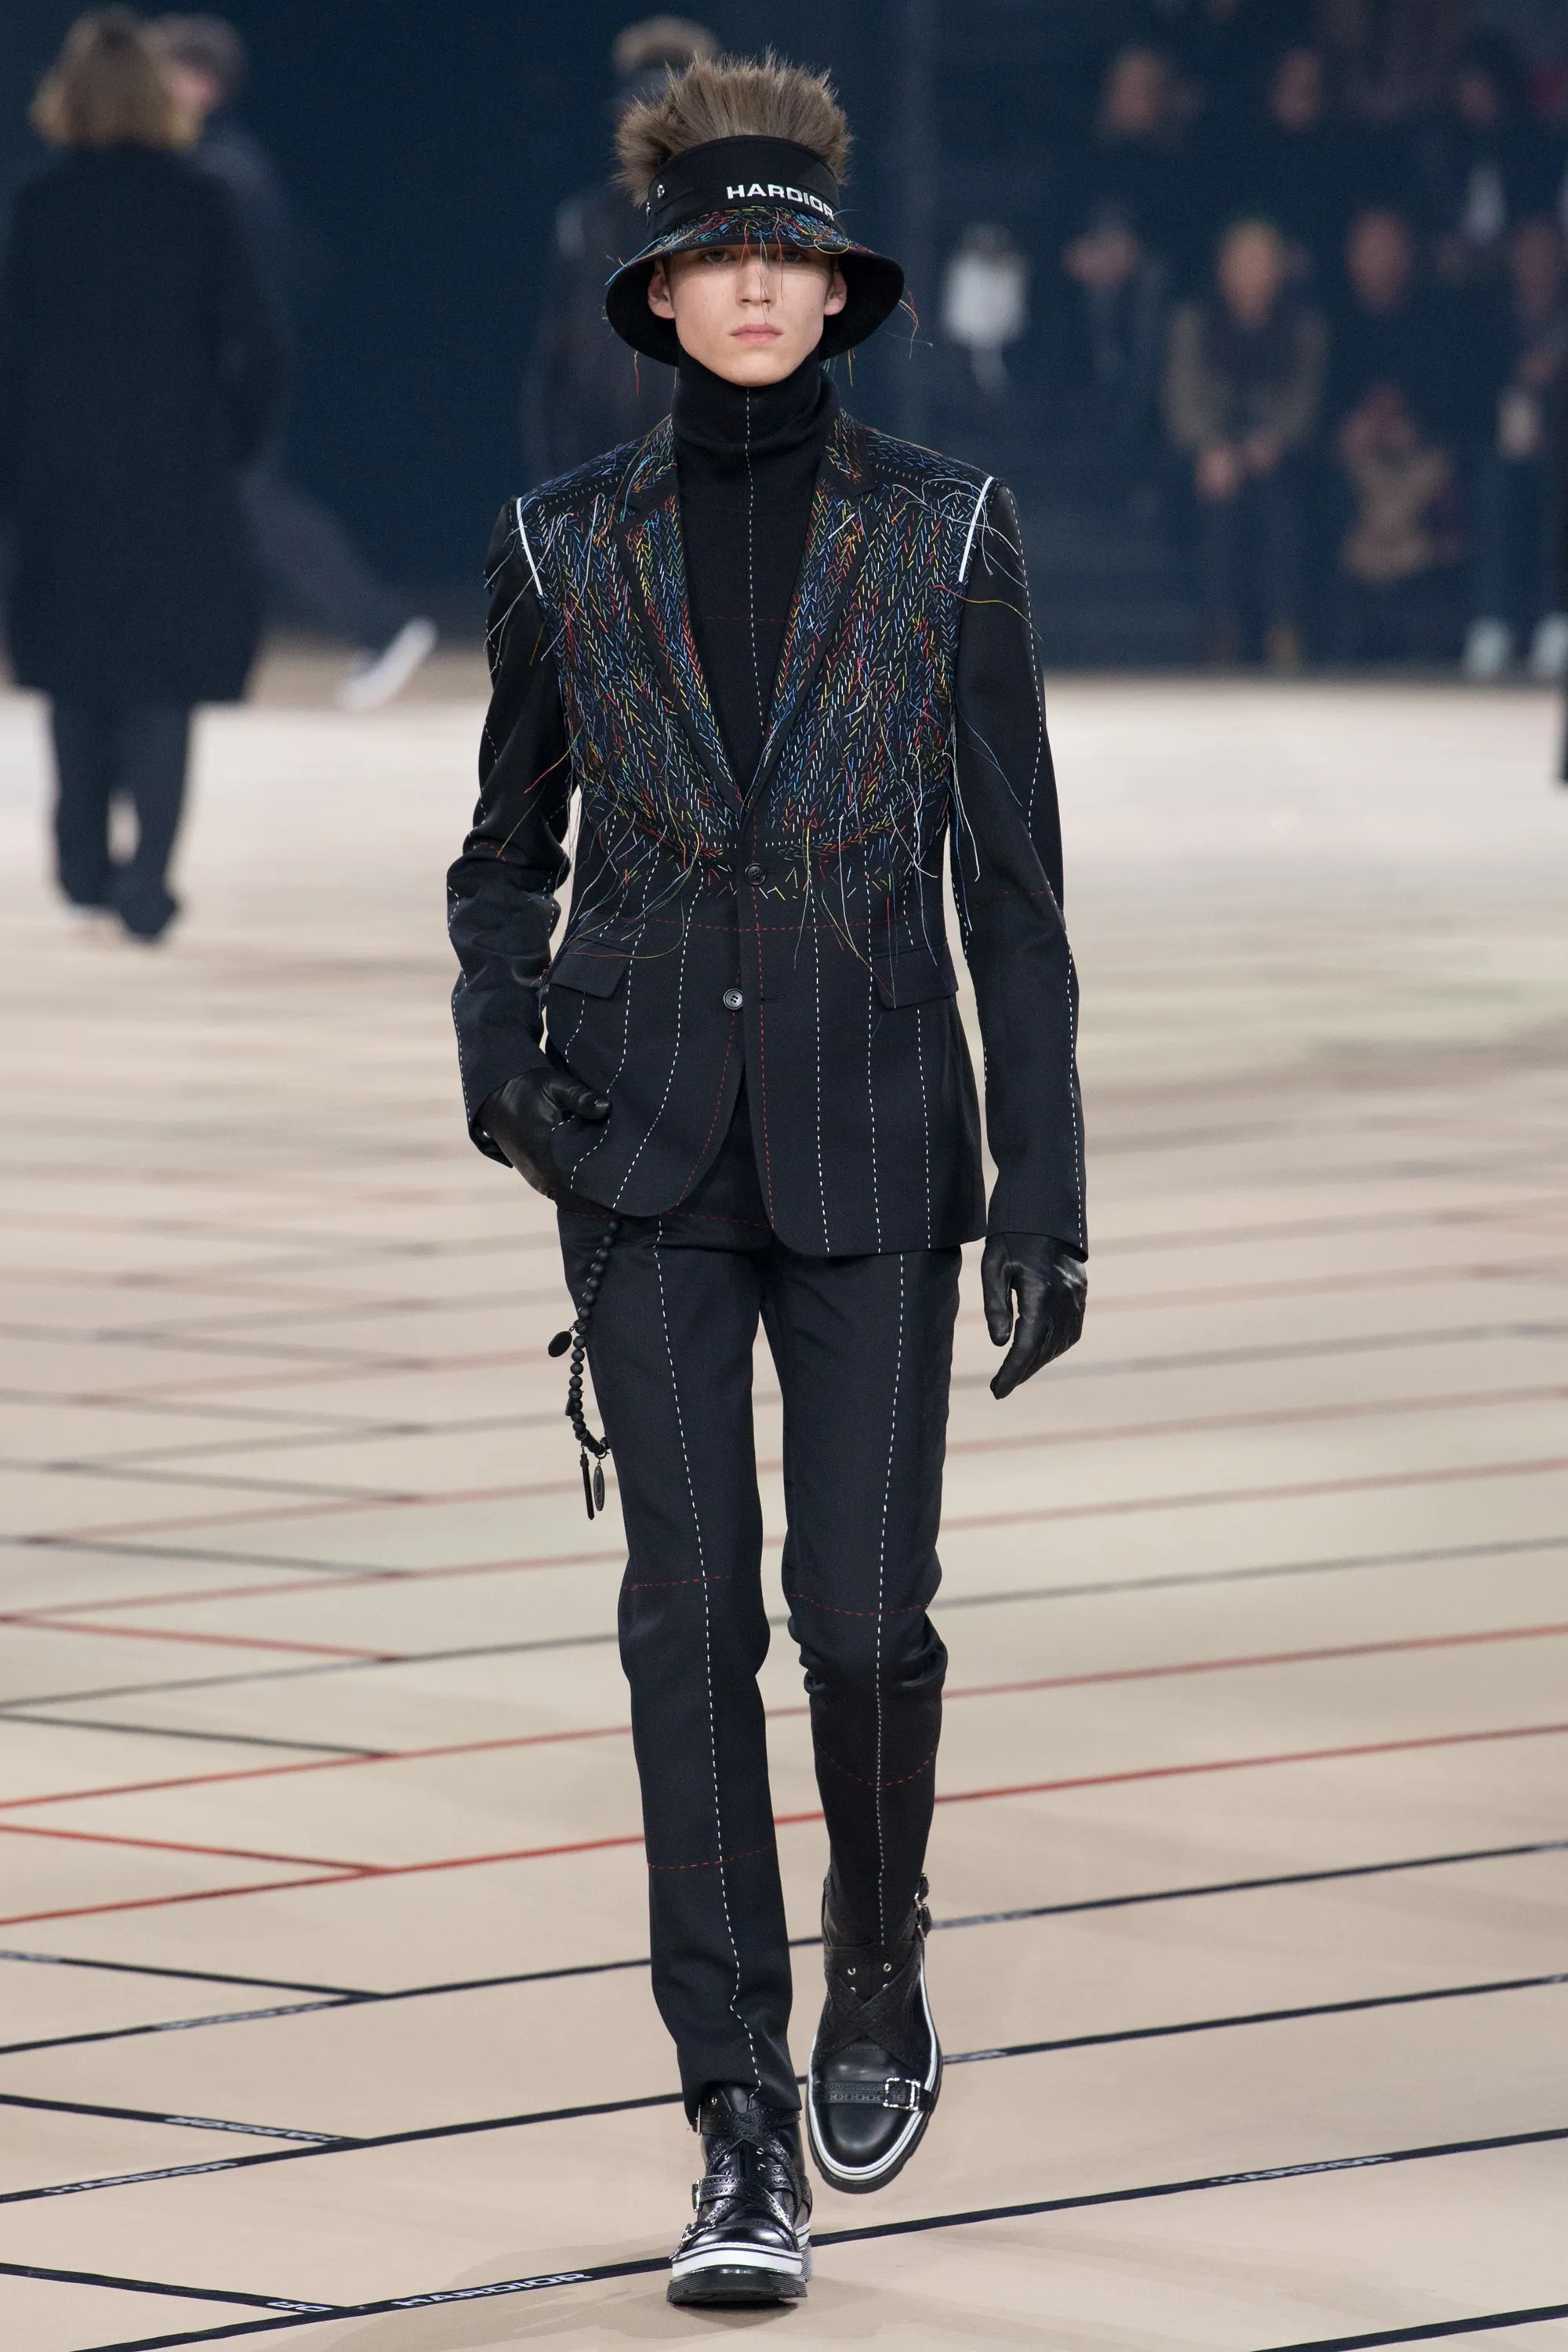 Dior Homme Fall/Winter 2017 FW17 AH17